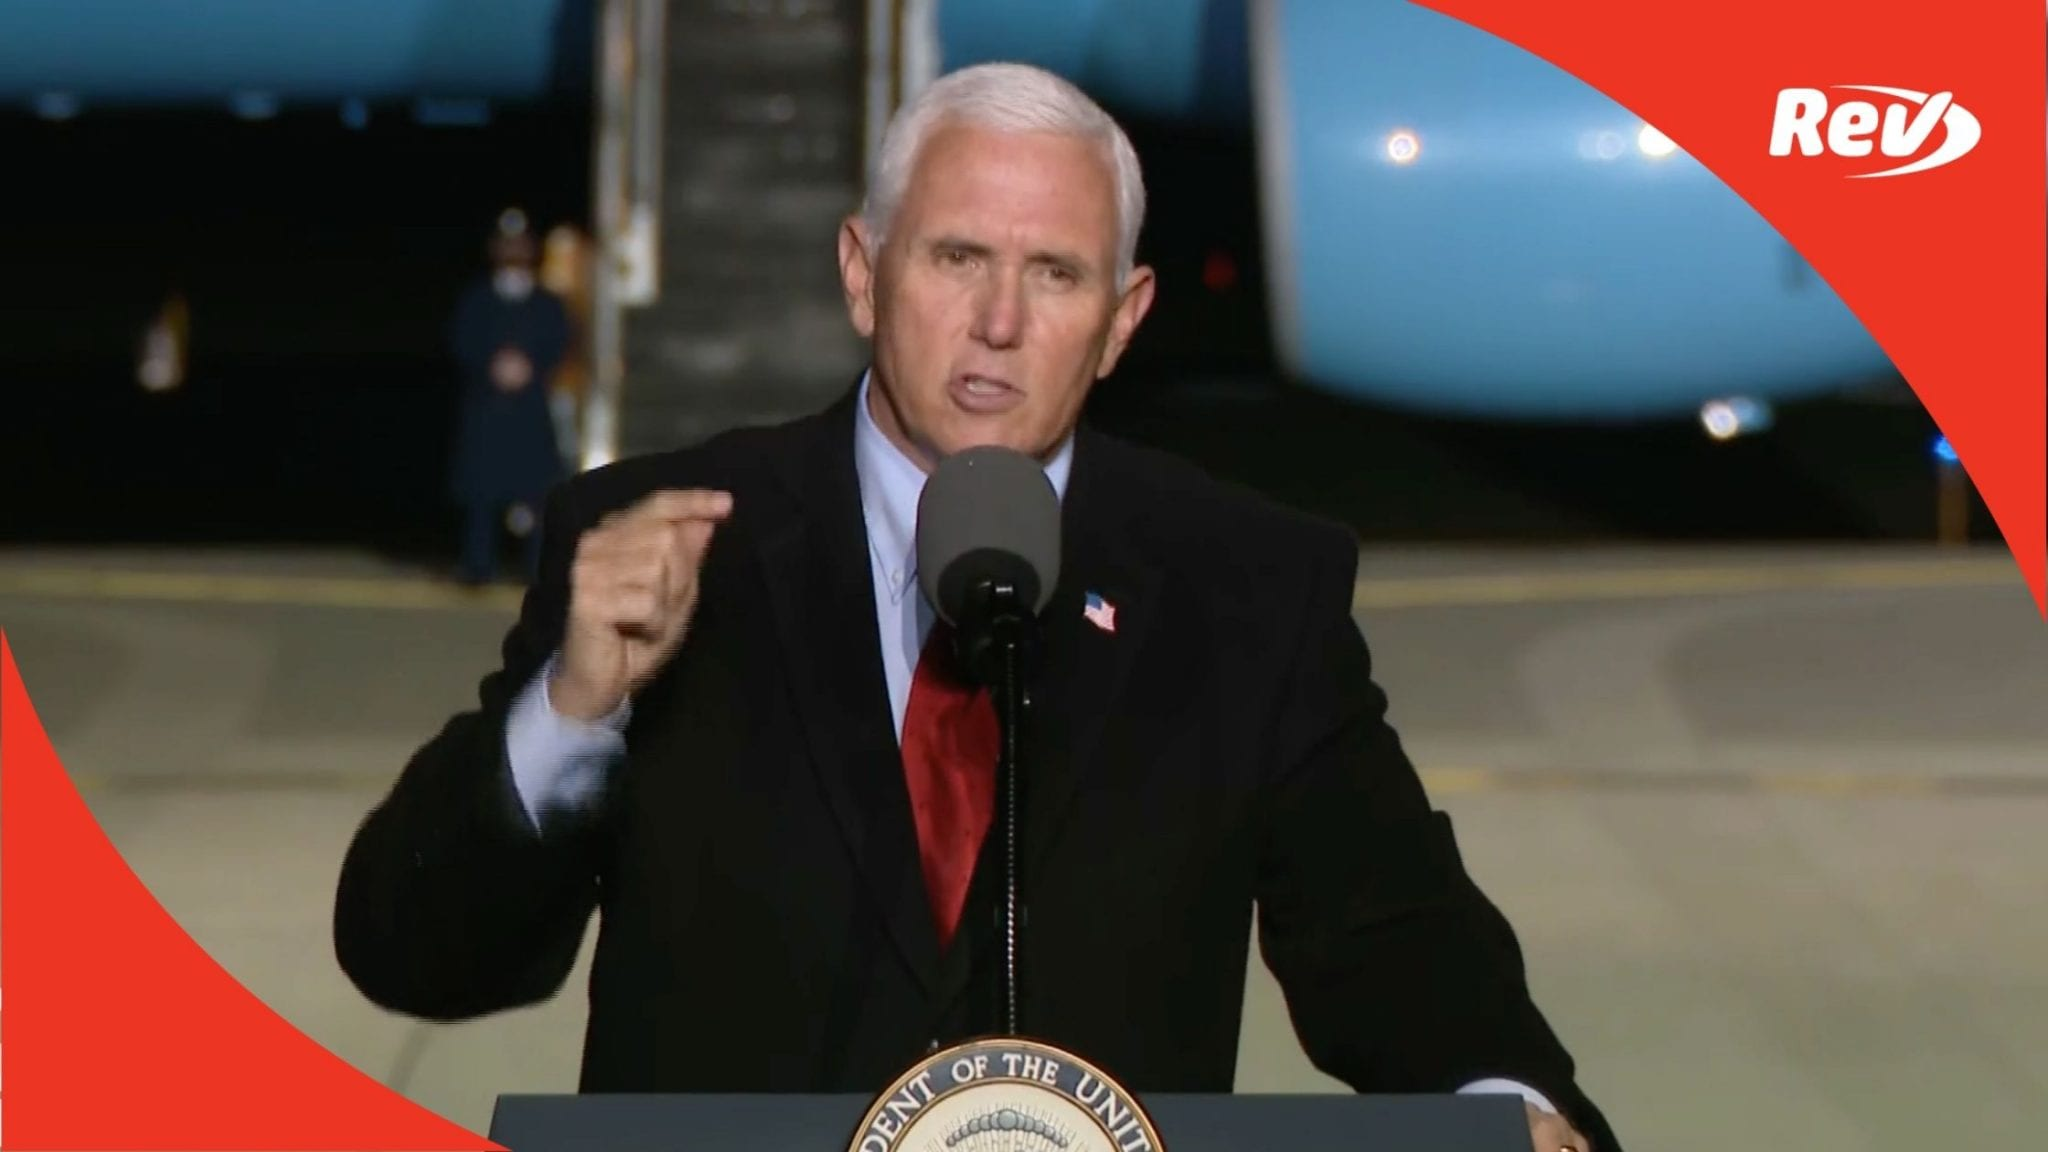 Mike Pence Campaign Speech Transcript Flint, Michigan October 28